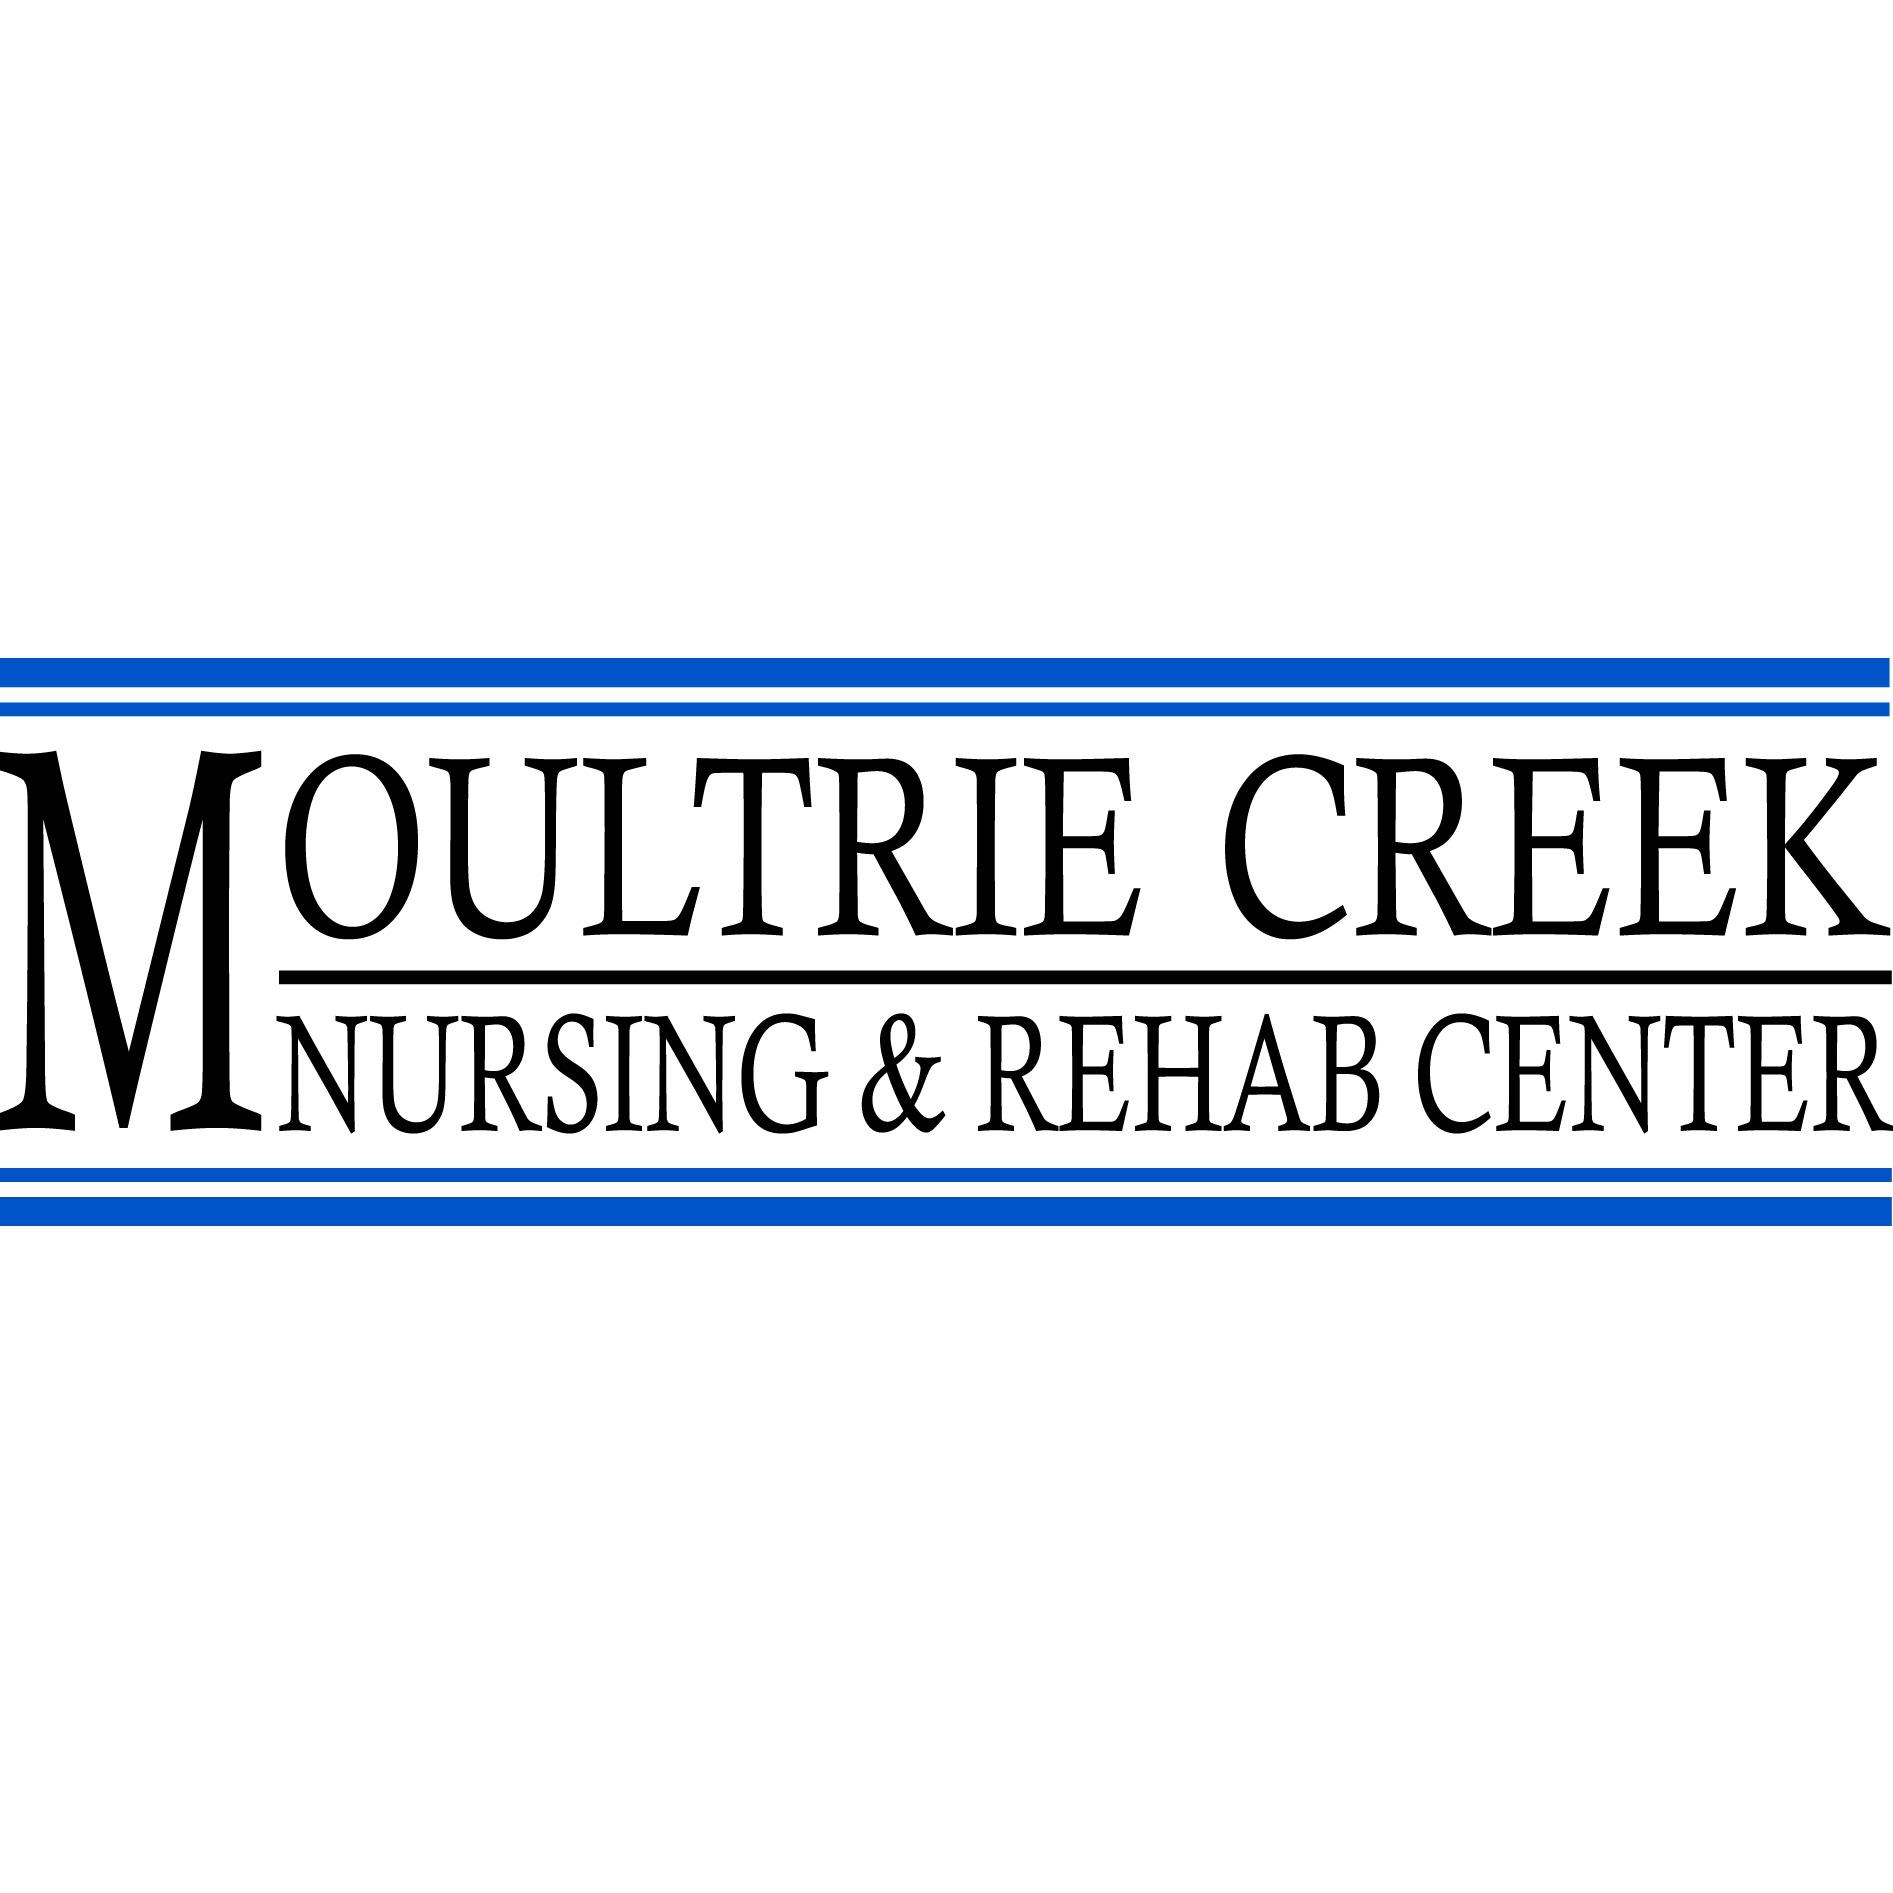 Moultrie Creek Nursing and Rehab Center